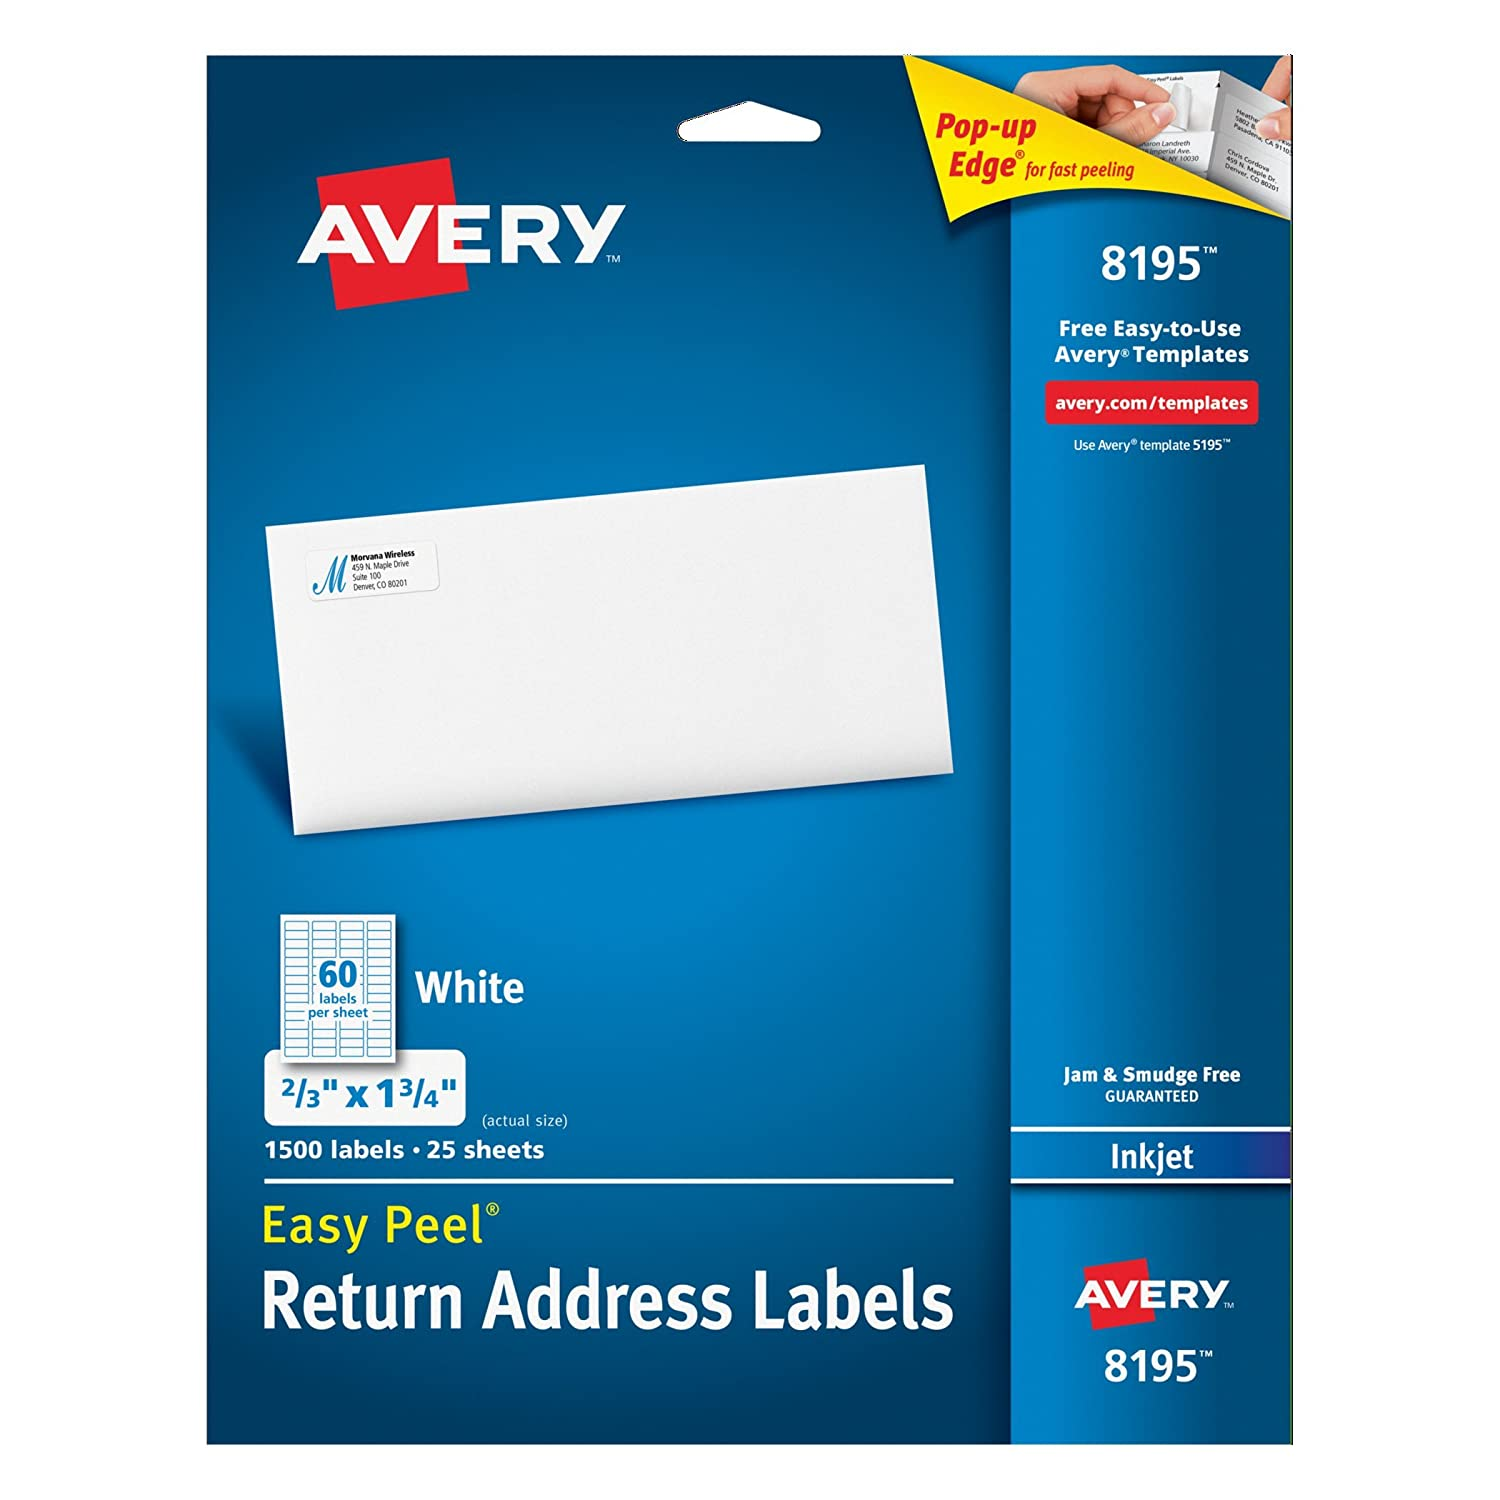 8195 template - Amazon Com Avery Easy Peel Return Address Labels For Inkjet Printers 2 3 X 1 3 4 Pack Of 1 500 8195 Office Products